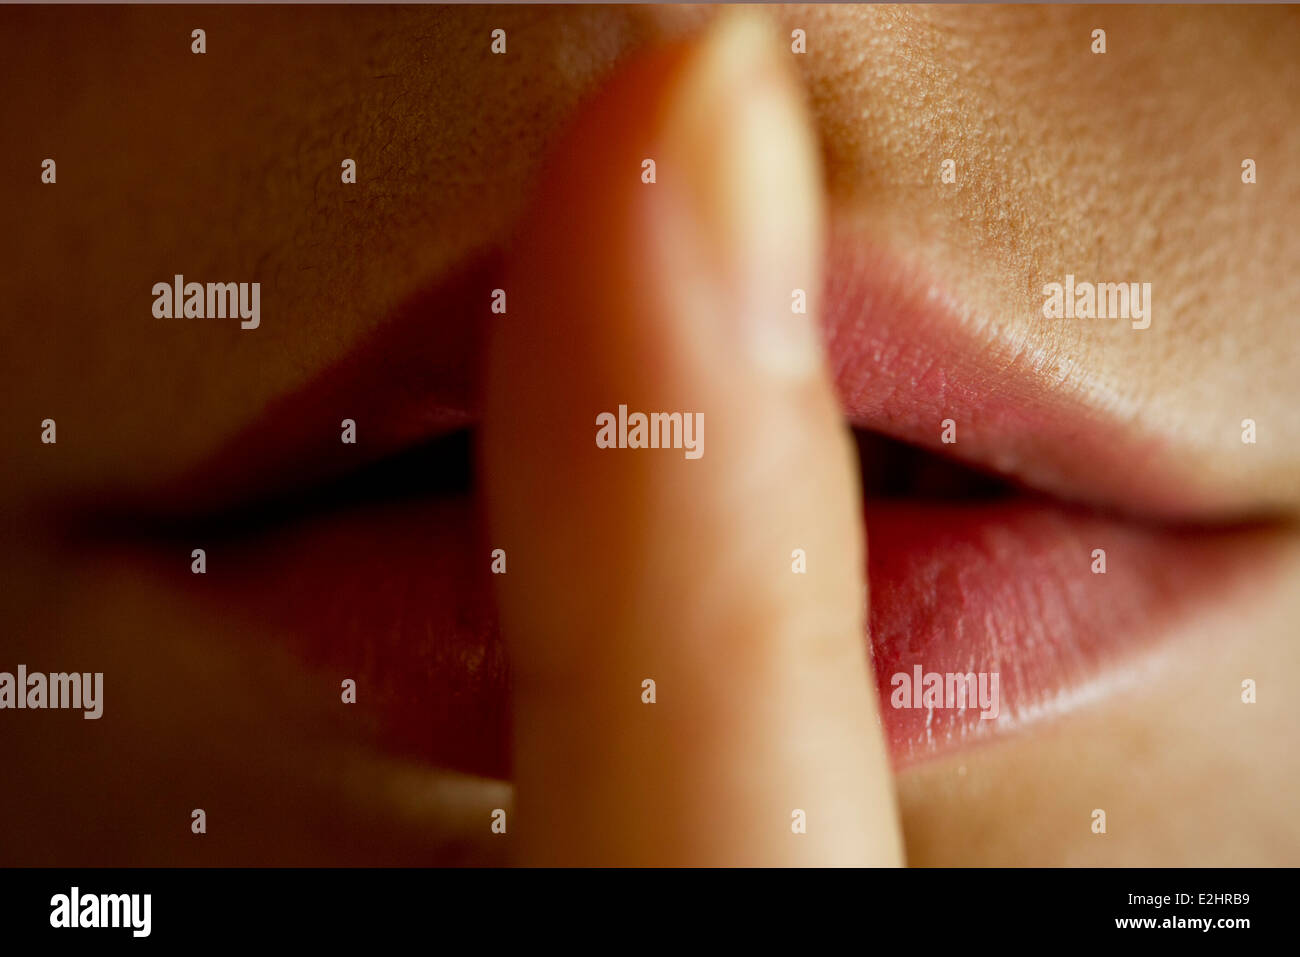 Woman with finger on lips - Stock Image